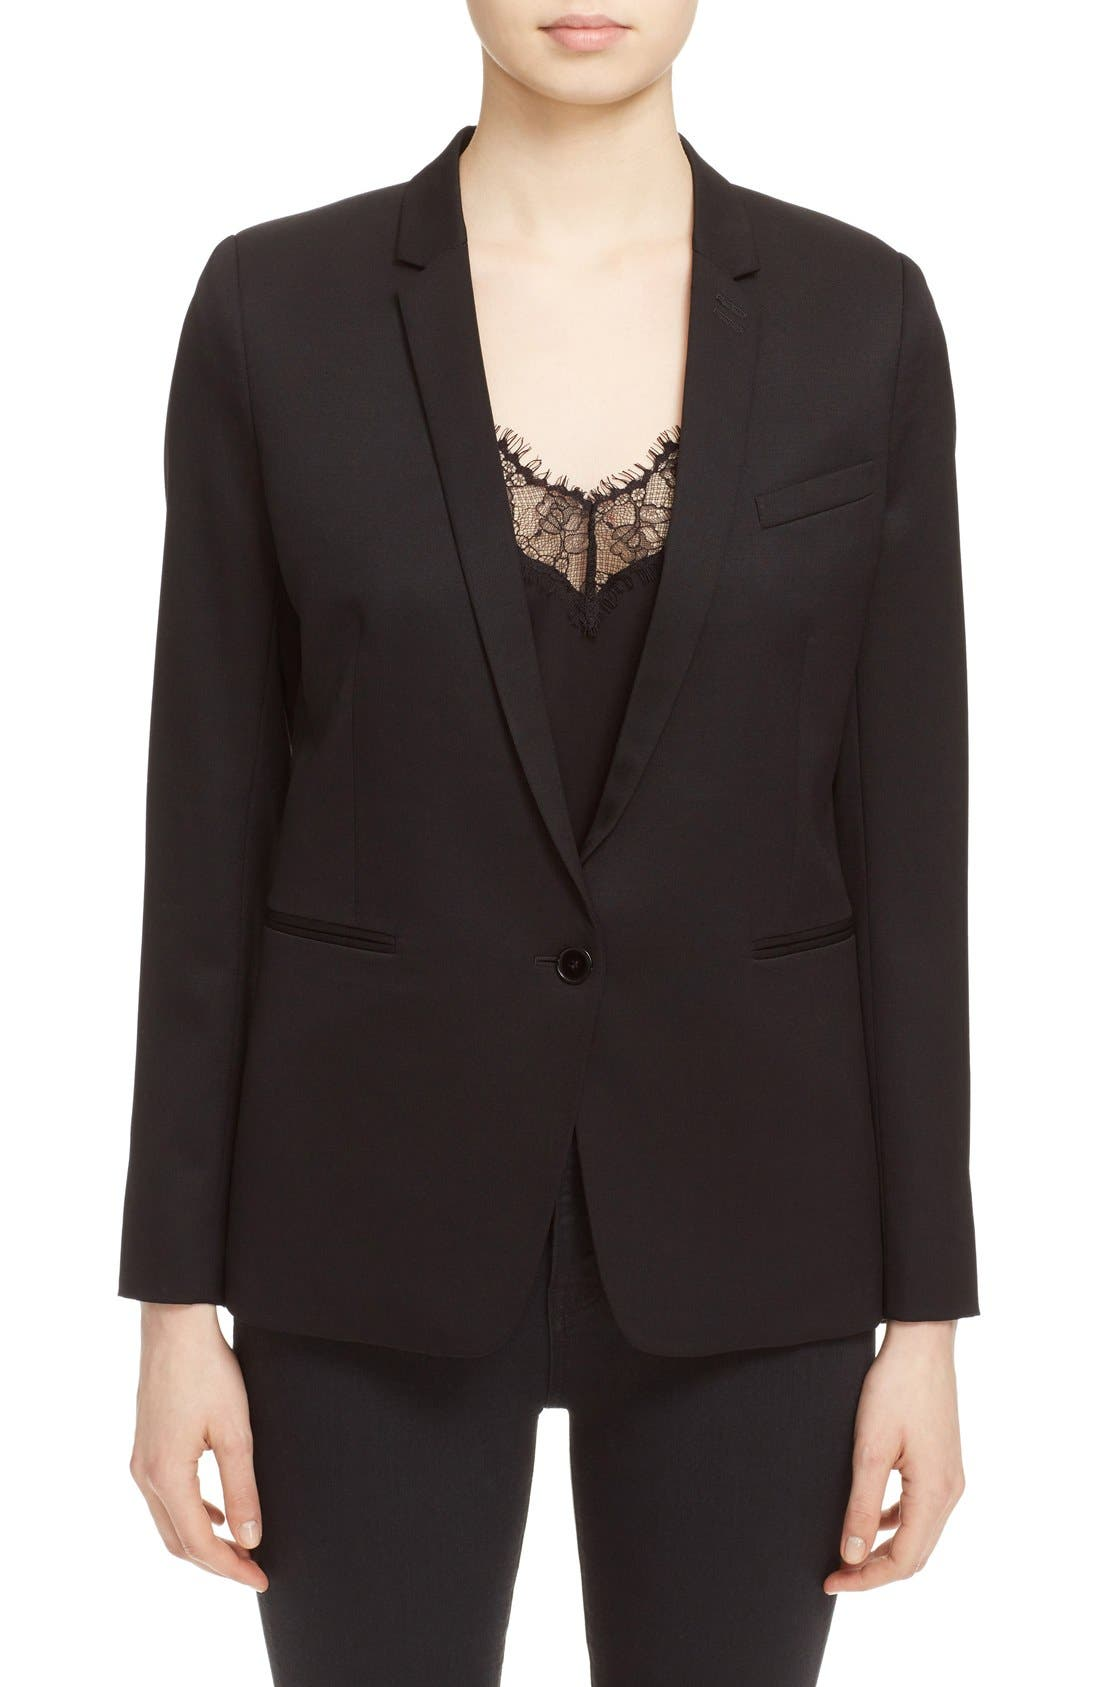 The Kooples 'Timeless' Stretch Wool Jacket